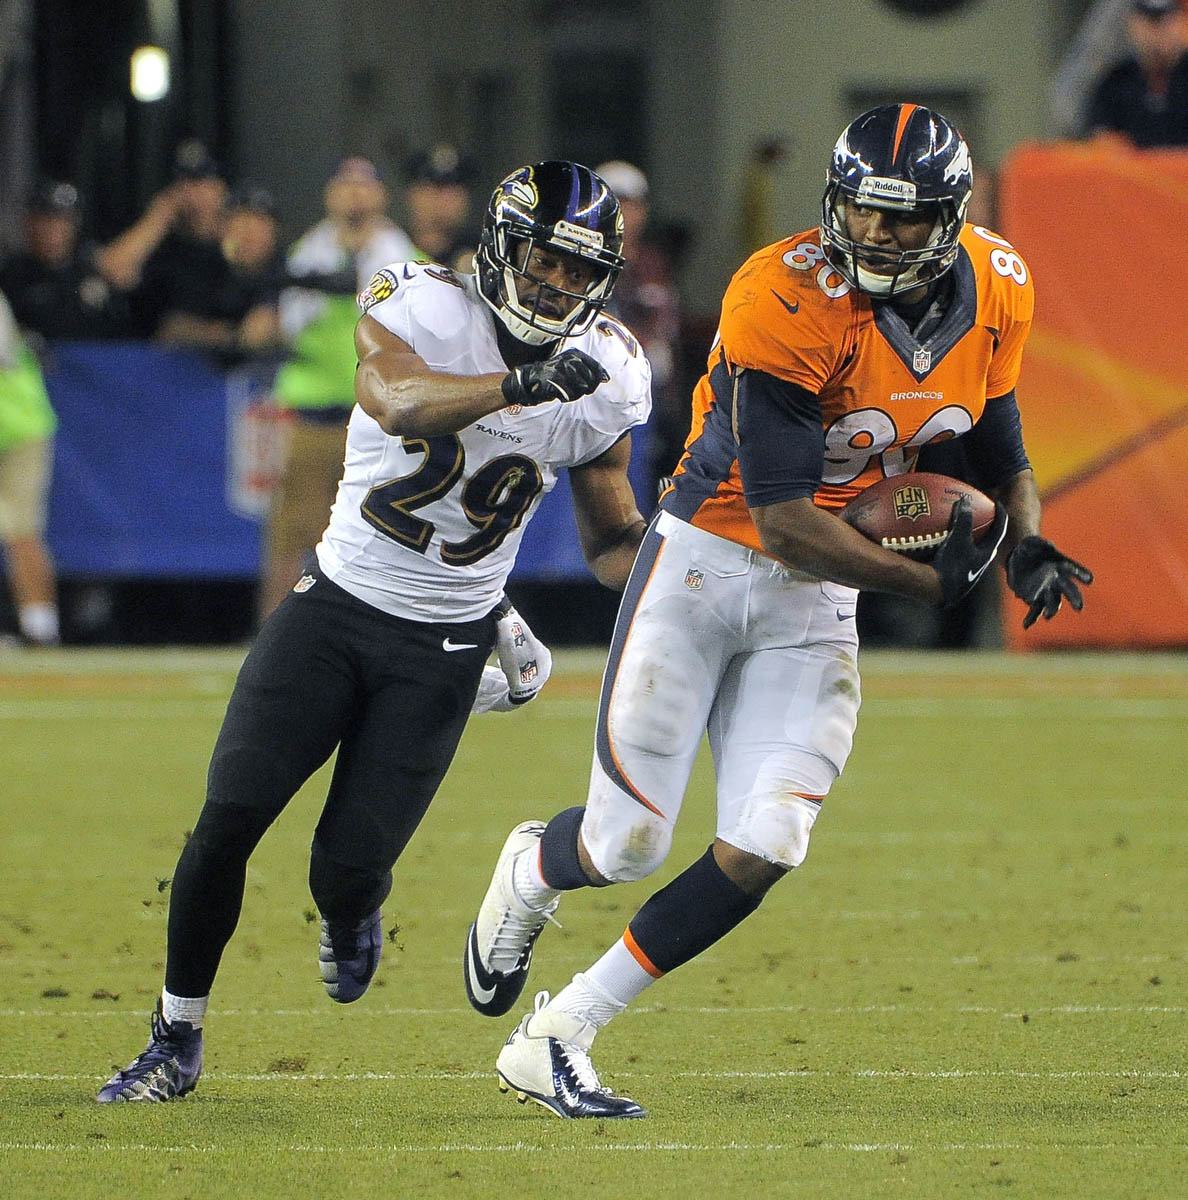 Denver Broncos: Rough Cut: A Raw Edit From The Ravens' Season Opening Loss